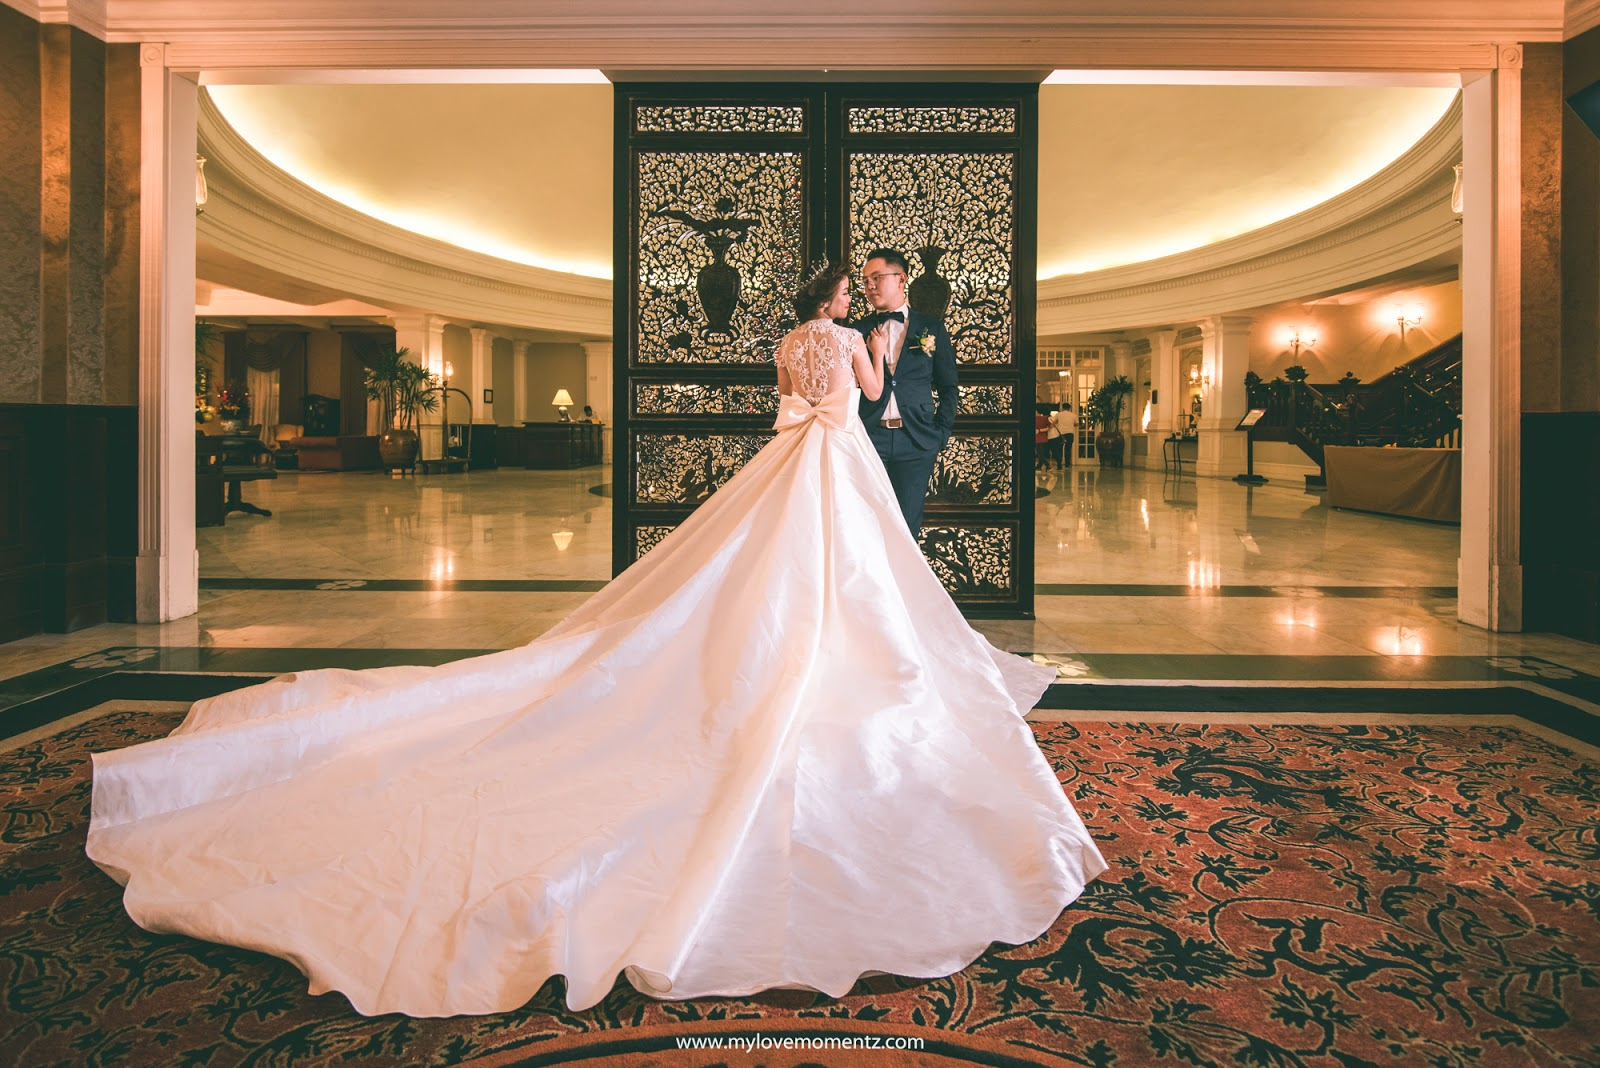 Bride and groom posing outside the ballroom of the E&O Hotel in Penang, Malaysia. Photo by My Love Momentz